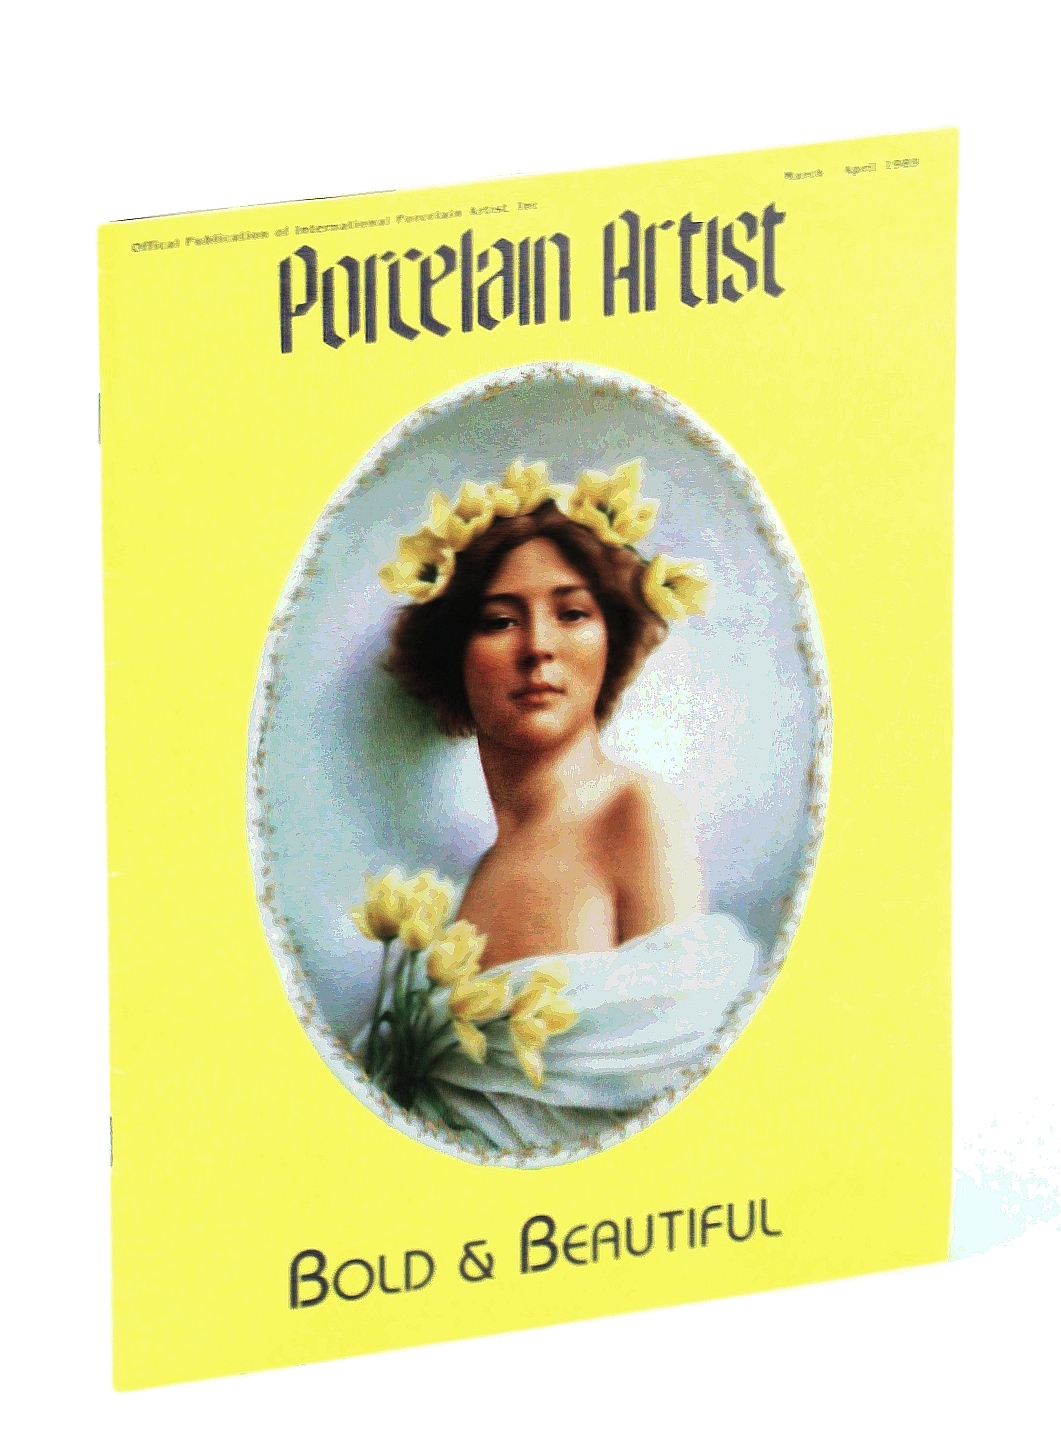 Image for Porcelain Artist [Magazine] March / April [Mar. / Apr.] 1989: Bold & Beautiful